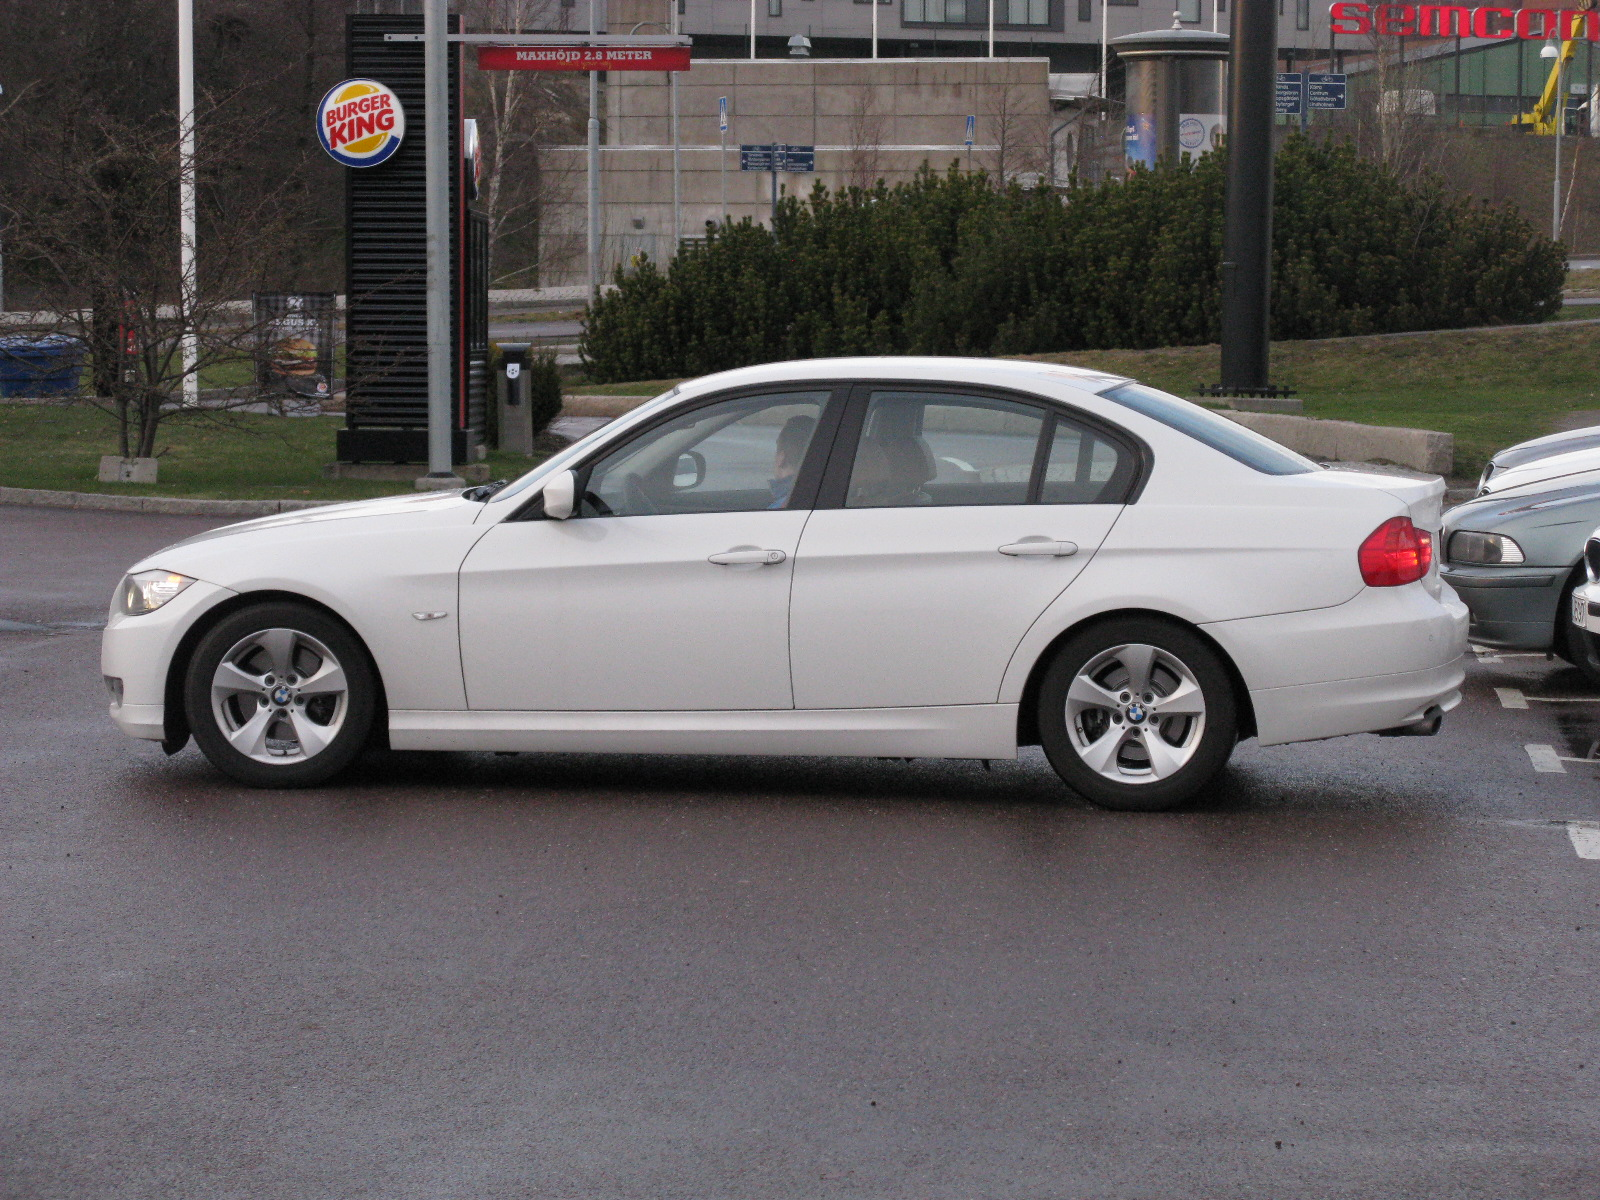 BMW 320d EDE E90 | Flickr - Photo Sharing!